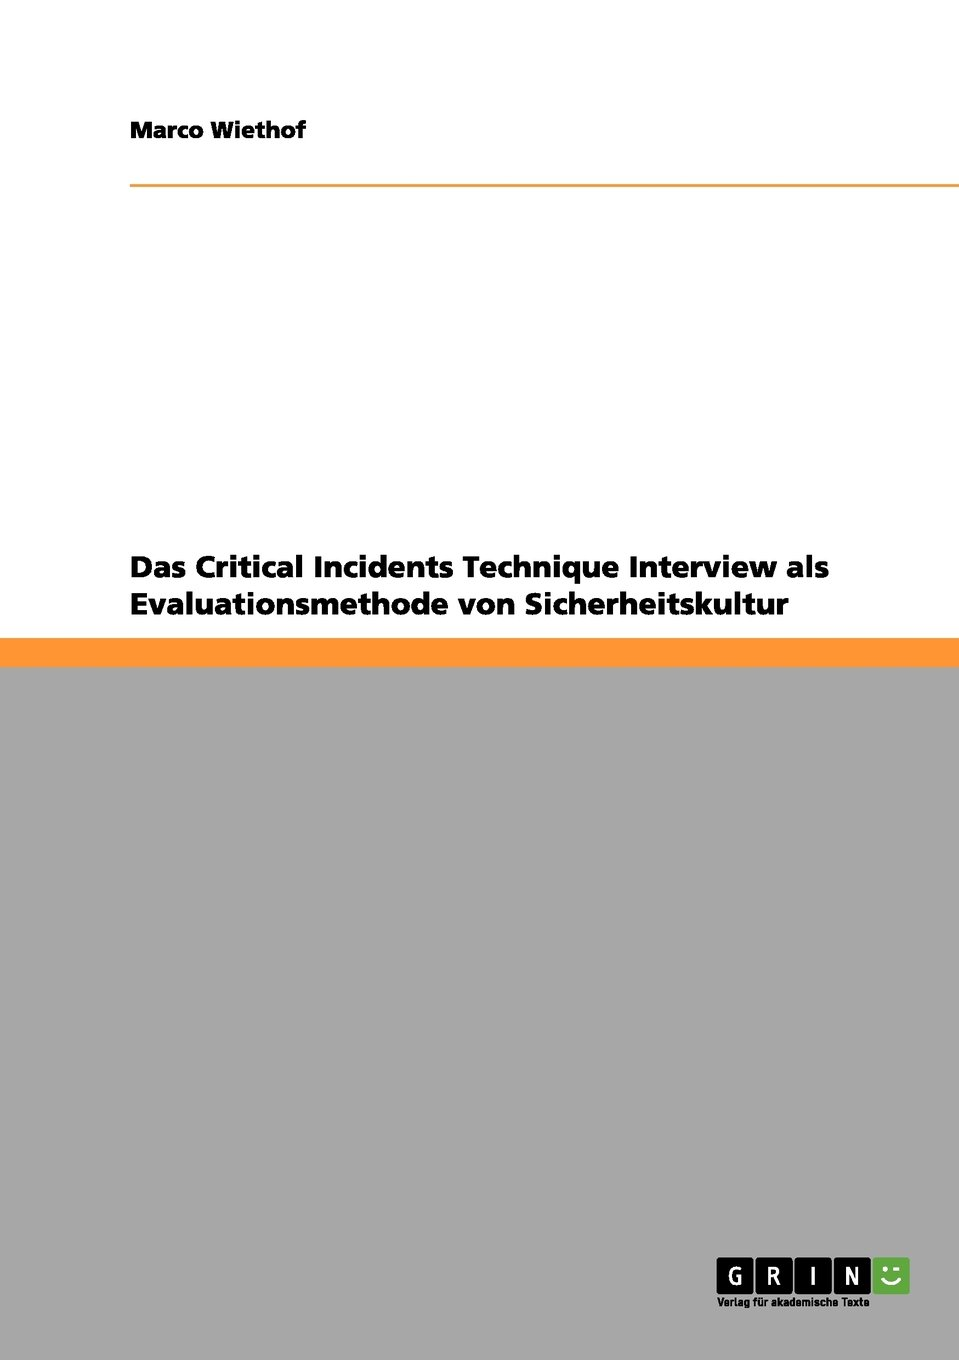 Das Critical Incidents Technique Interview als Evaluationsmethode von Sicherheitskultur